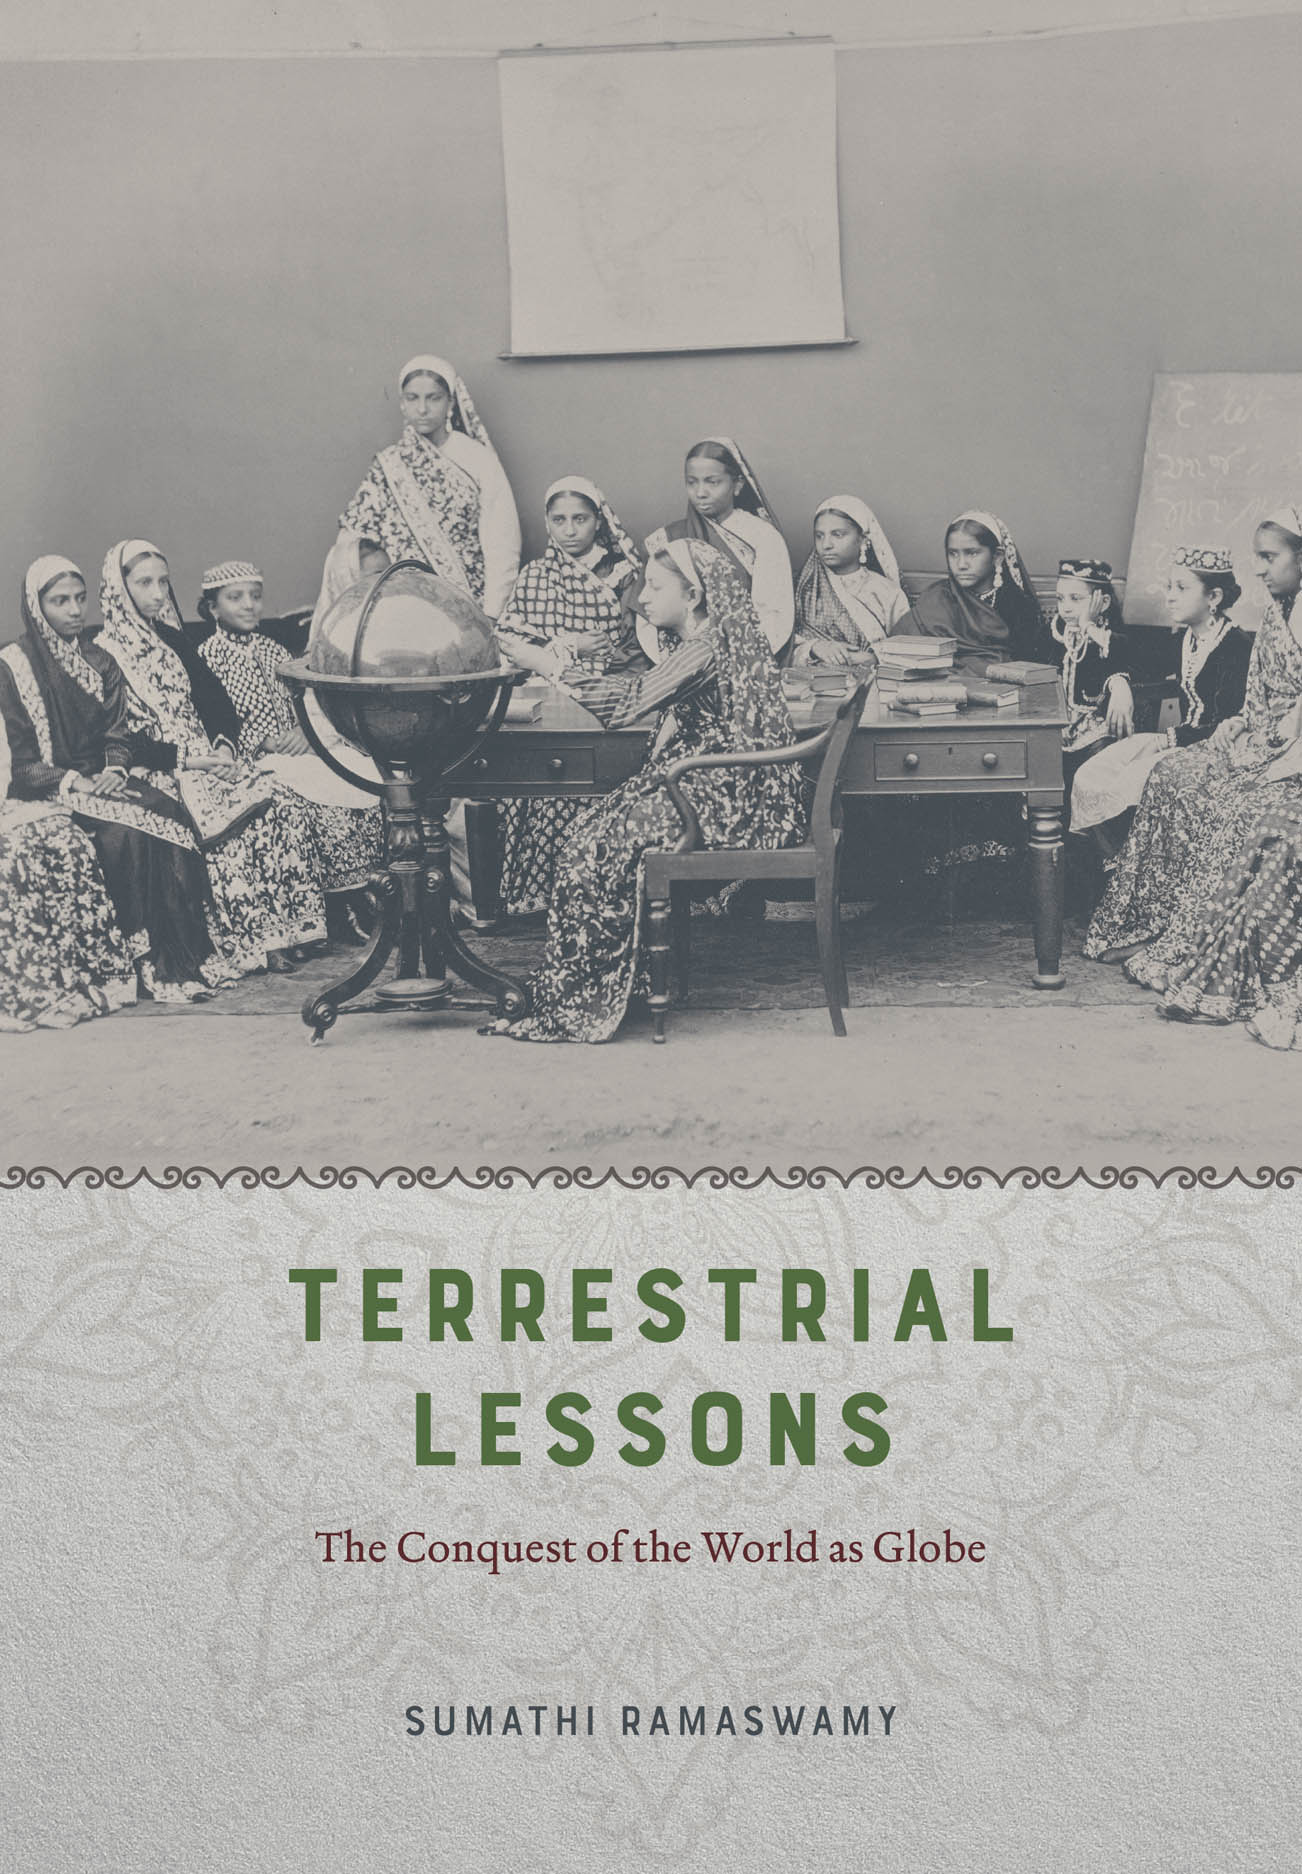 Terrestrial Lessons: The Conquest of the World as Globe